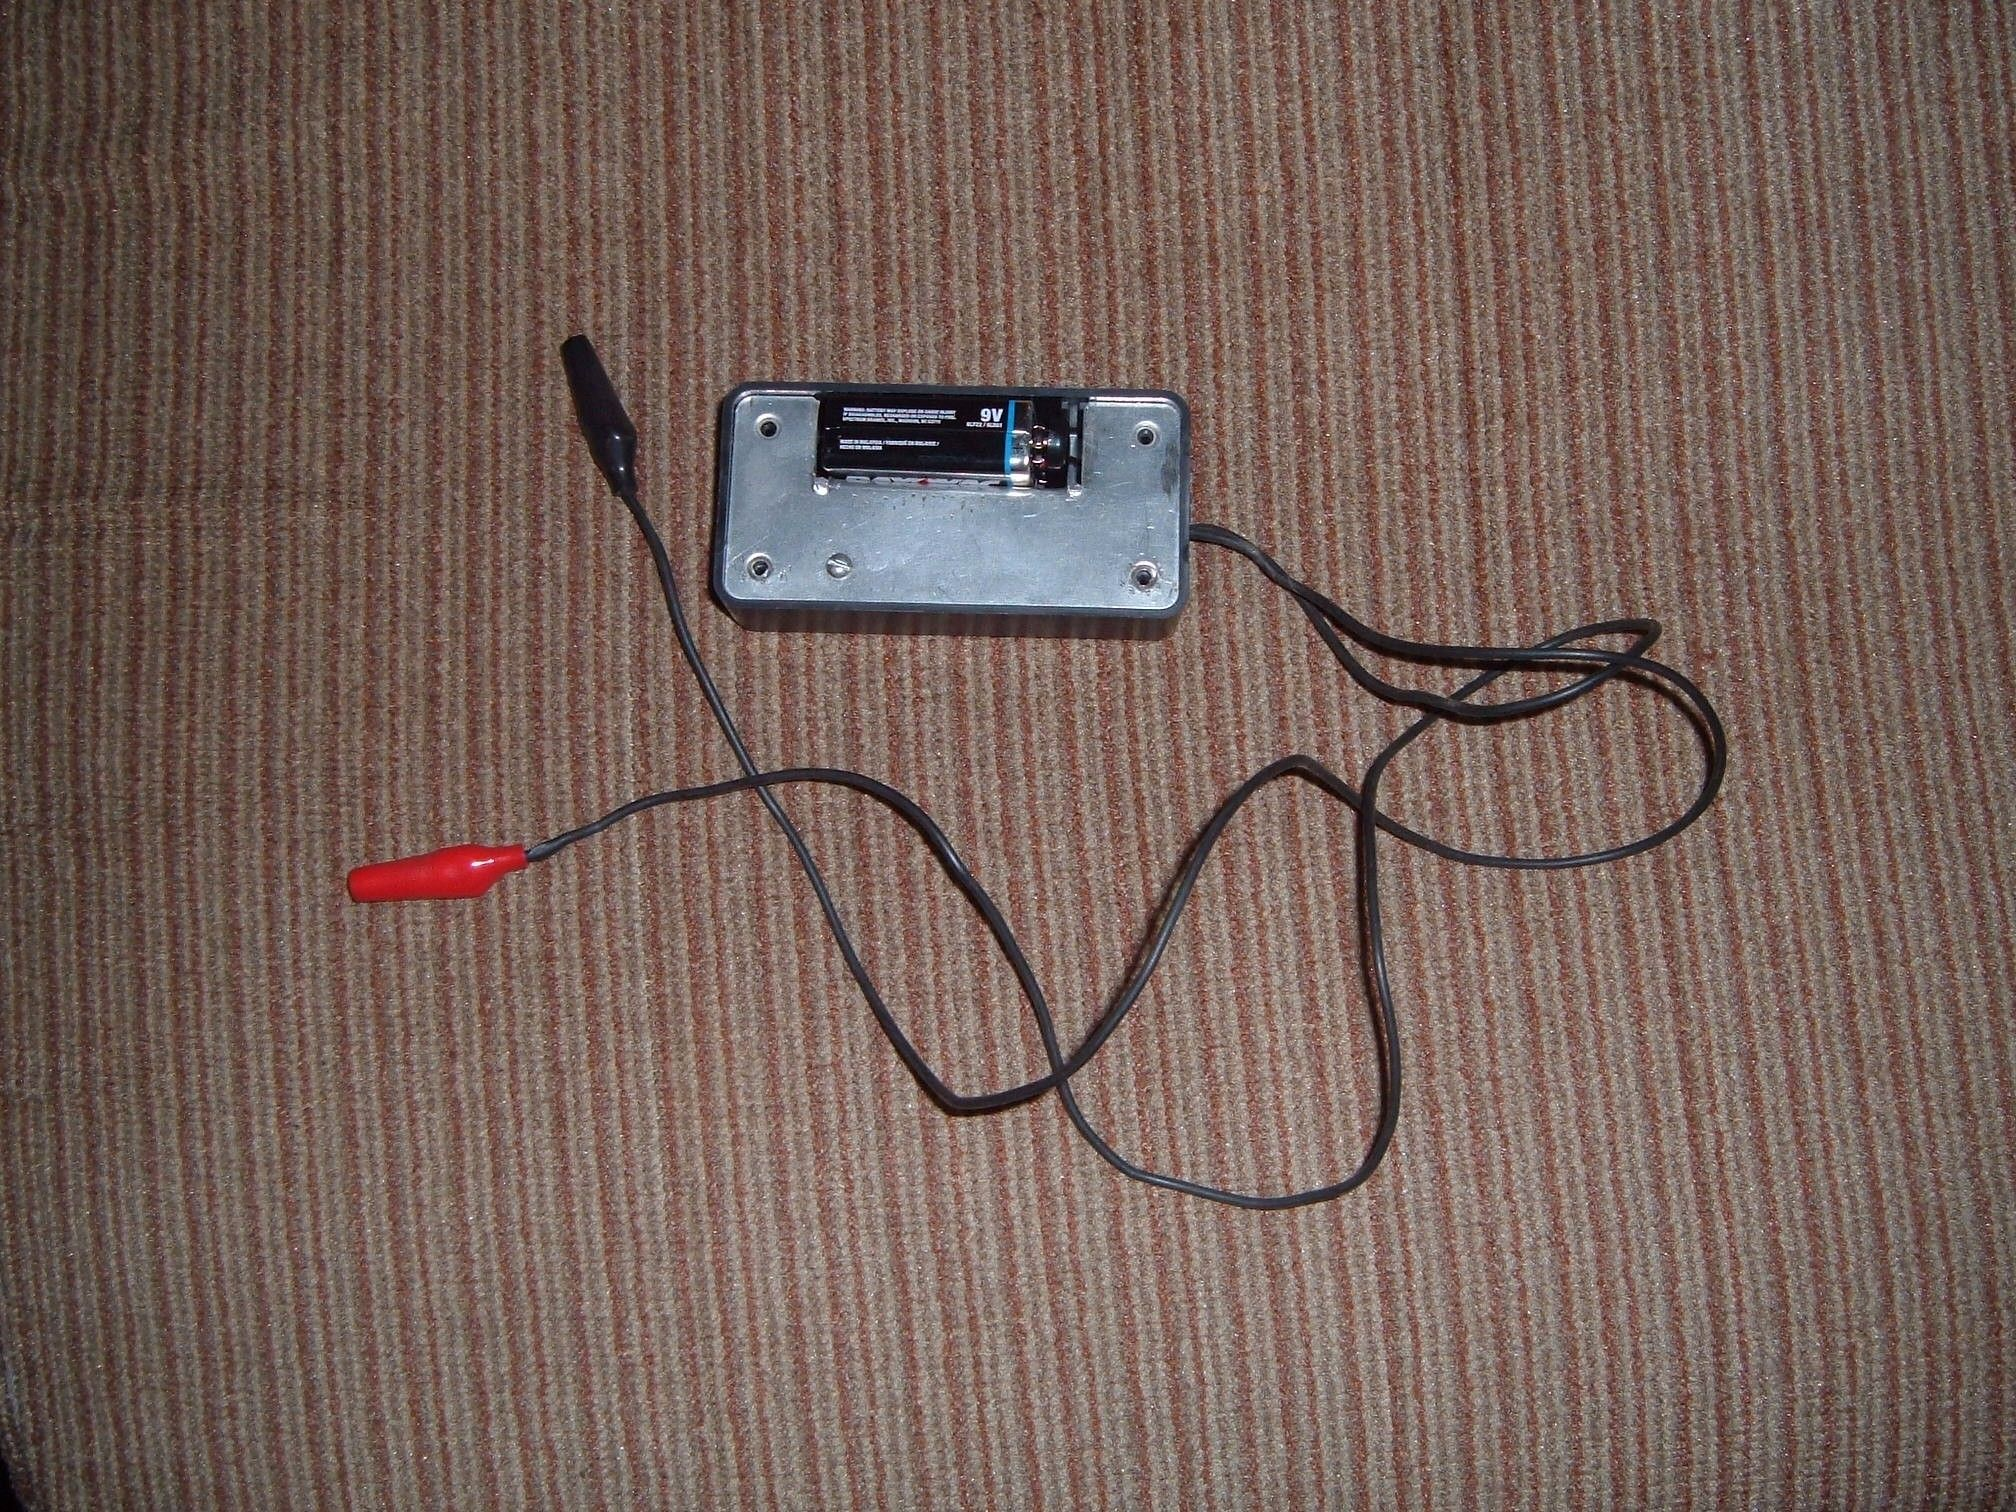 Tps Tool By Triumphoveru Homemade Constructed From A Wwwhomemadeelectronicscom Voltage Regulator 9v